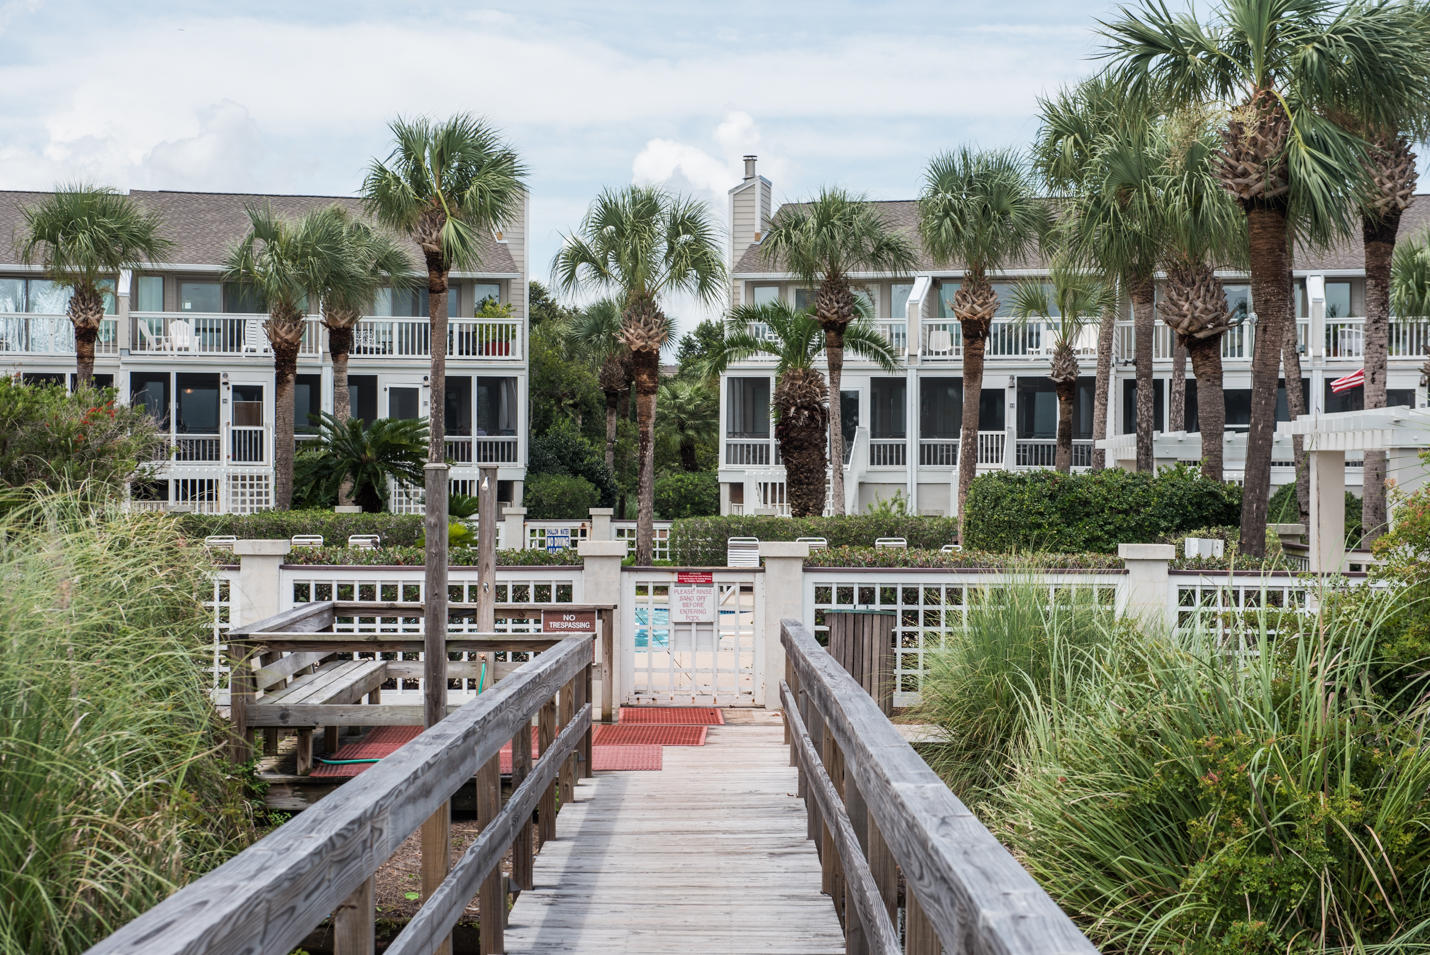 Beach Club Villas Homes For Sale - 66 Beach Club Villas, Isle of Palms, SC - 24